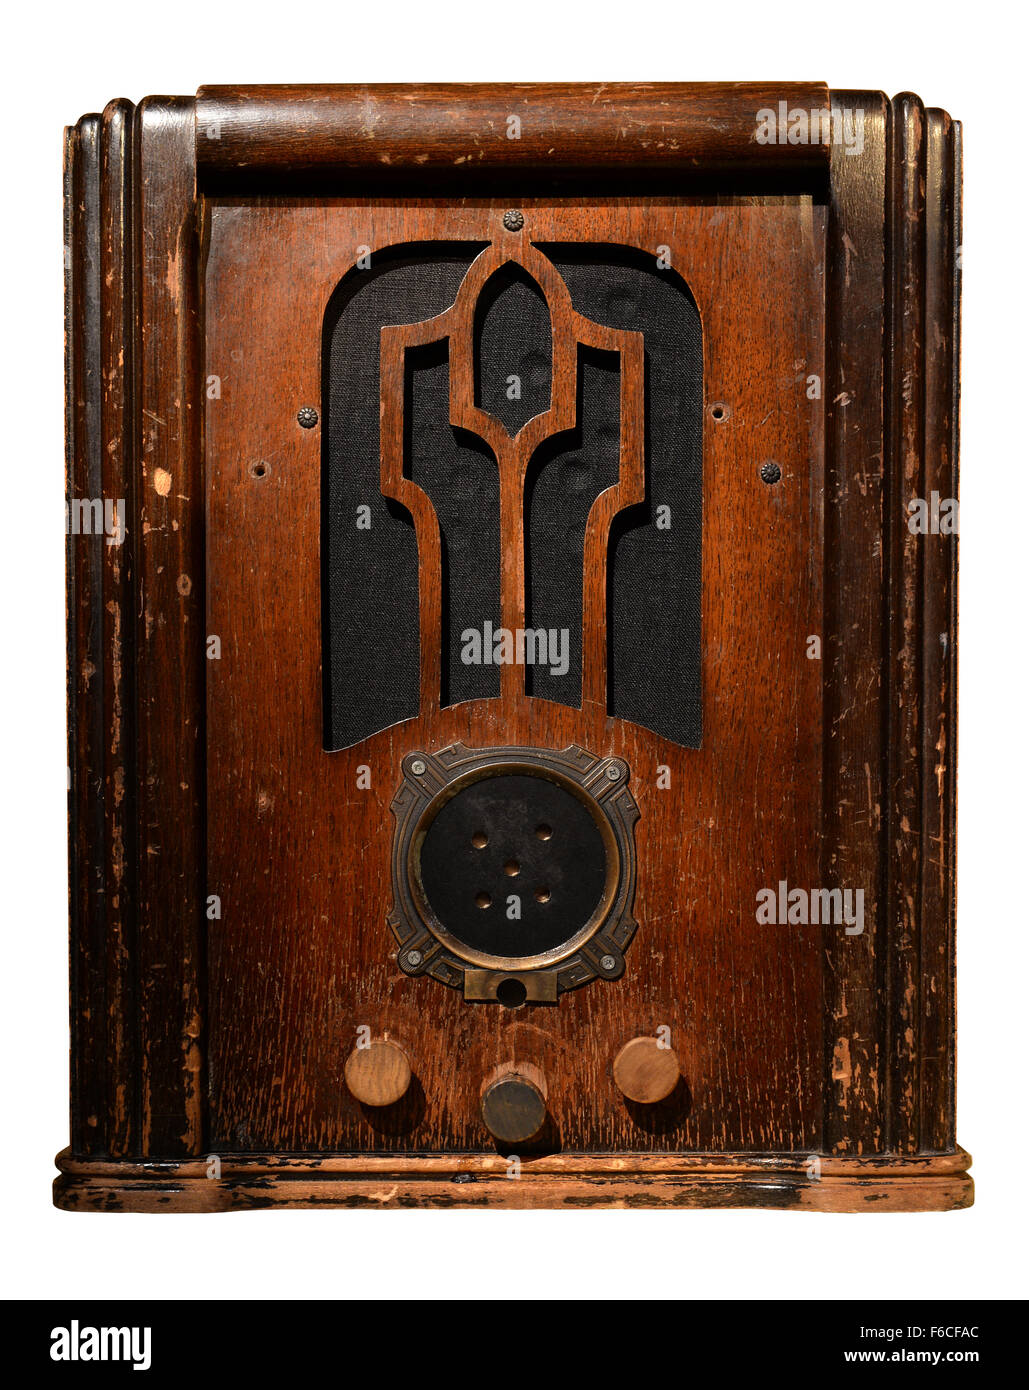 Vintage radio isolated over white background - With clipping path Stock Photo